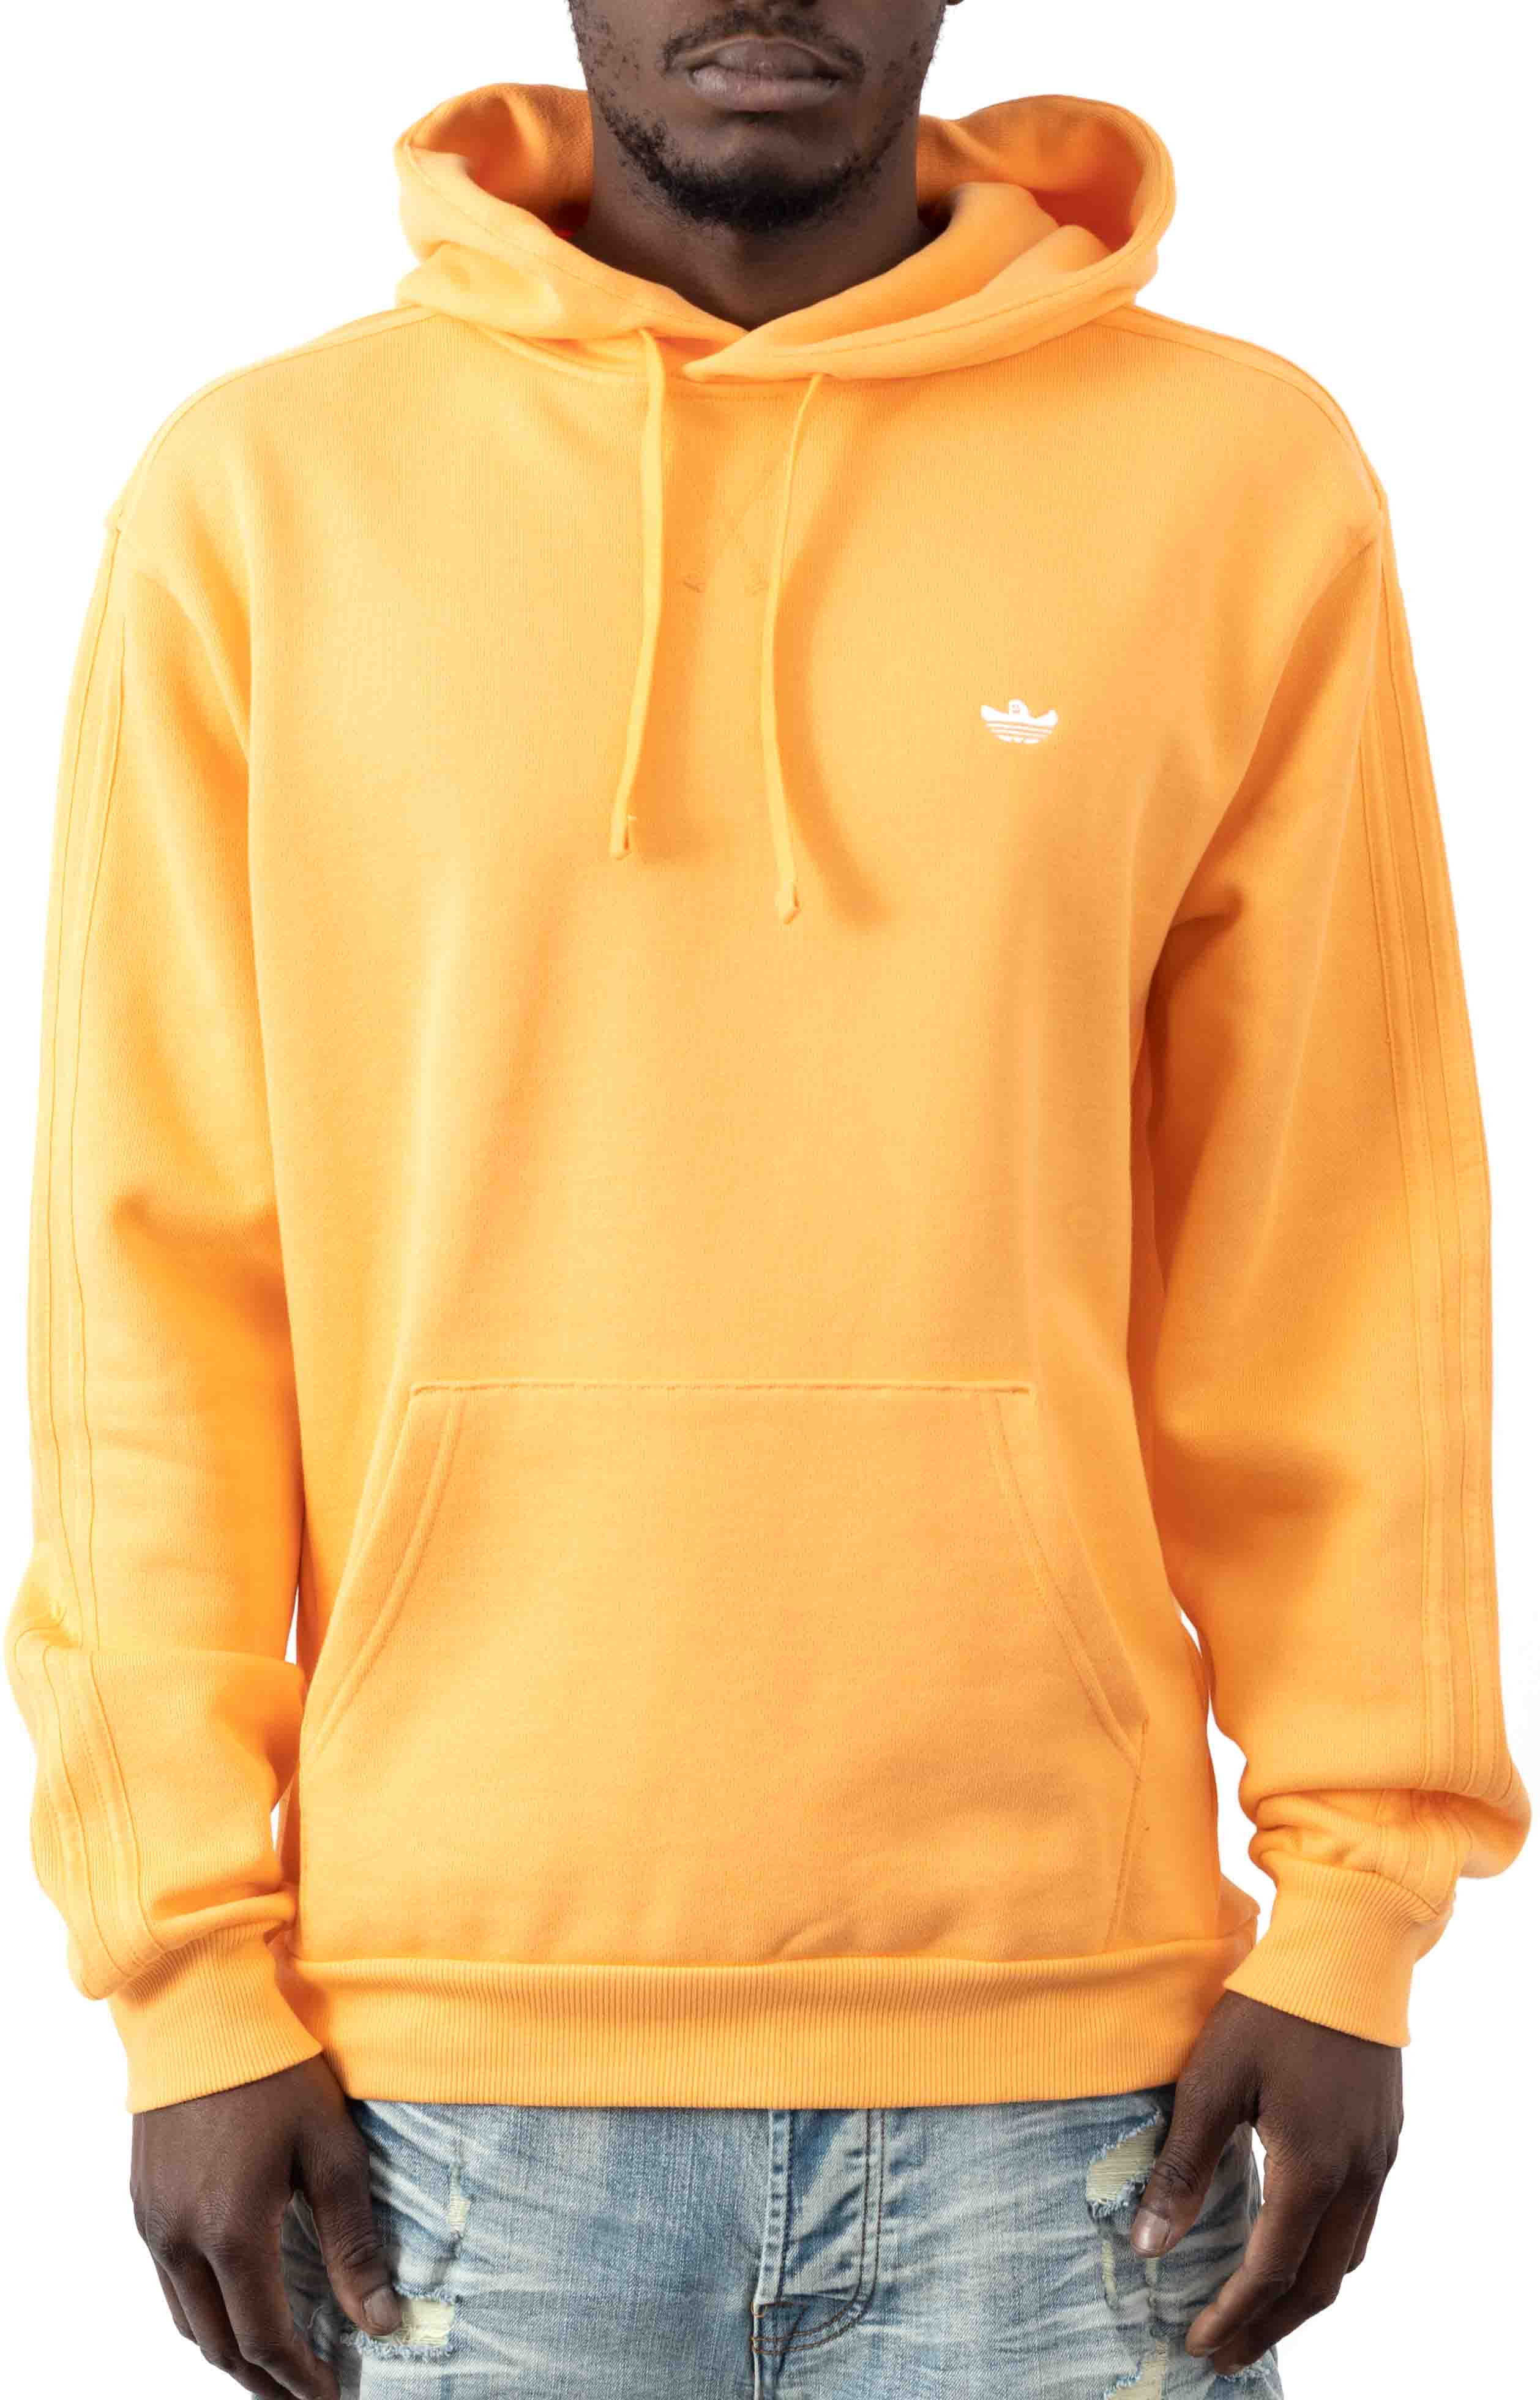 Heavyweight Shmoo Pullover Hoodie - Hazy Orange/White